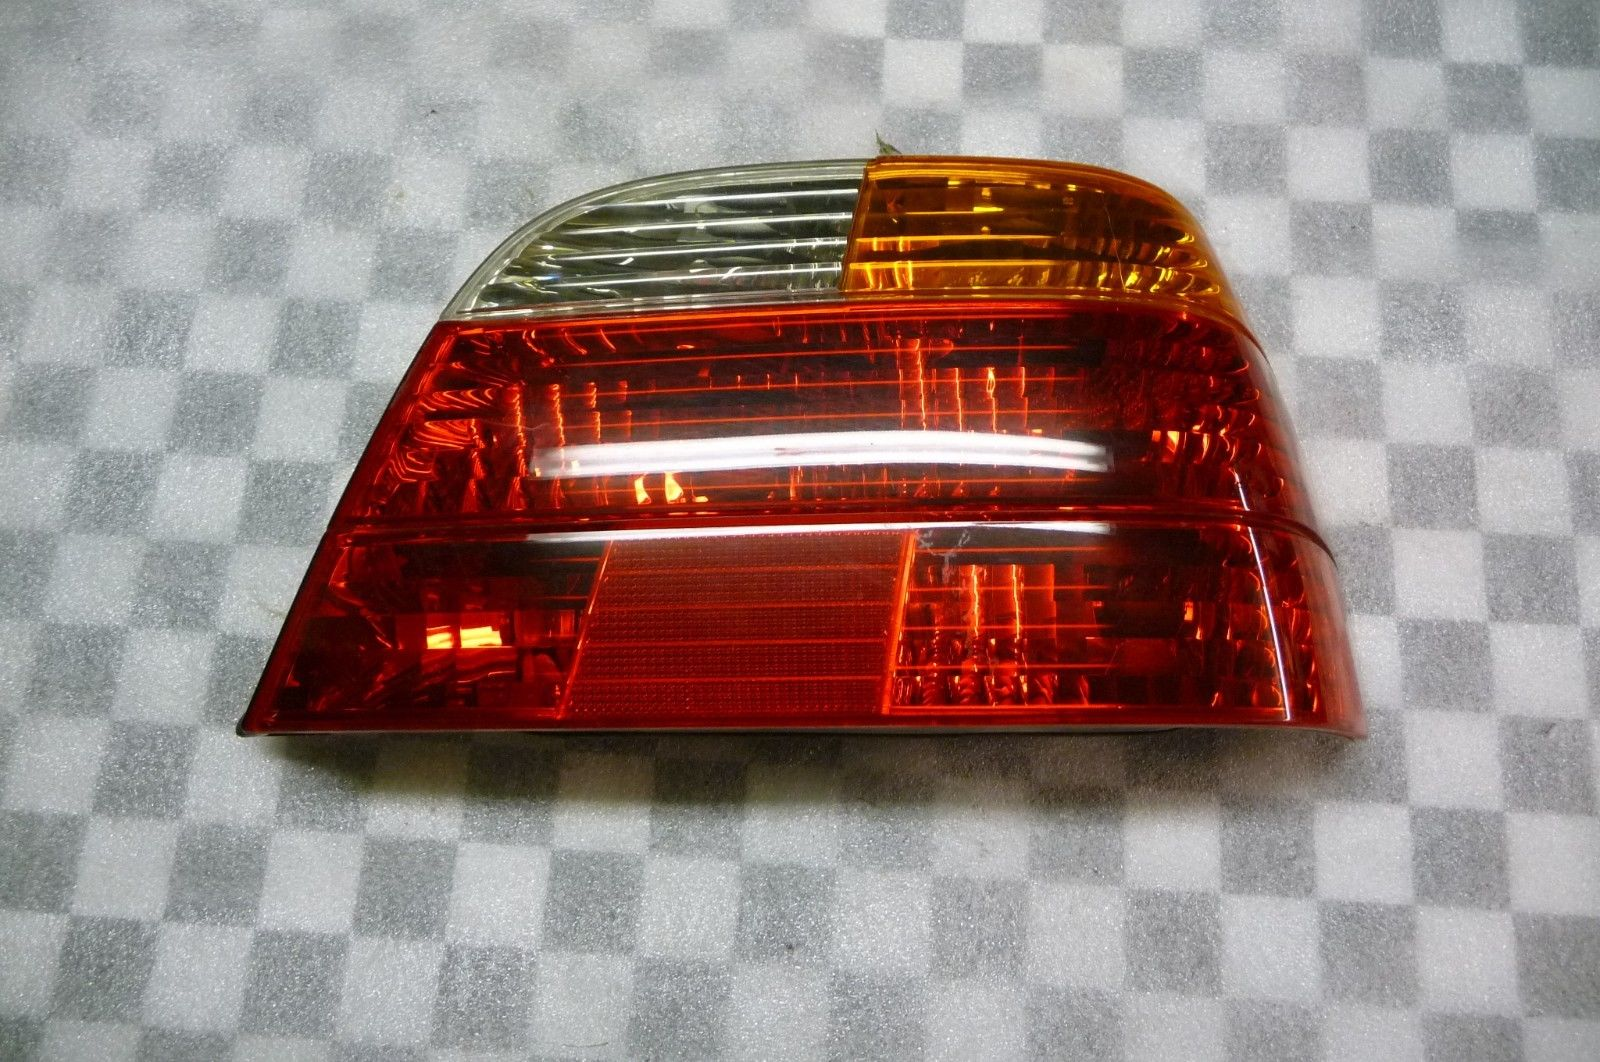 BMW 7 Series Rear Right Taillight Tail Light Lamp Yellow Turn Signal 63218381250